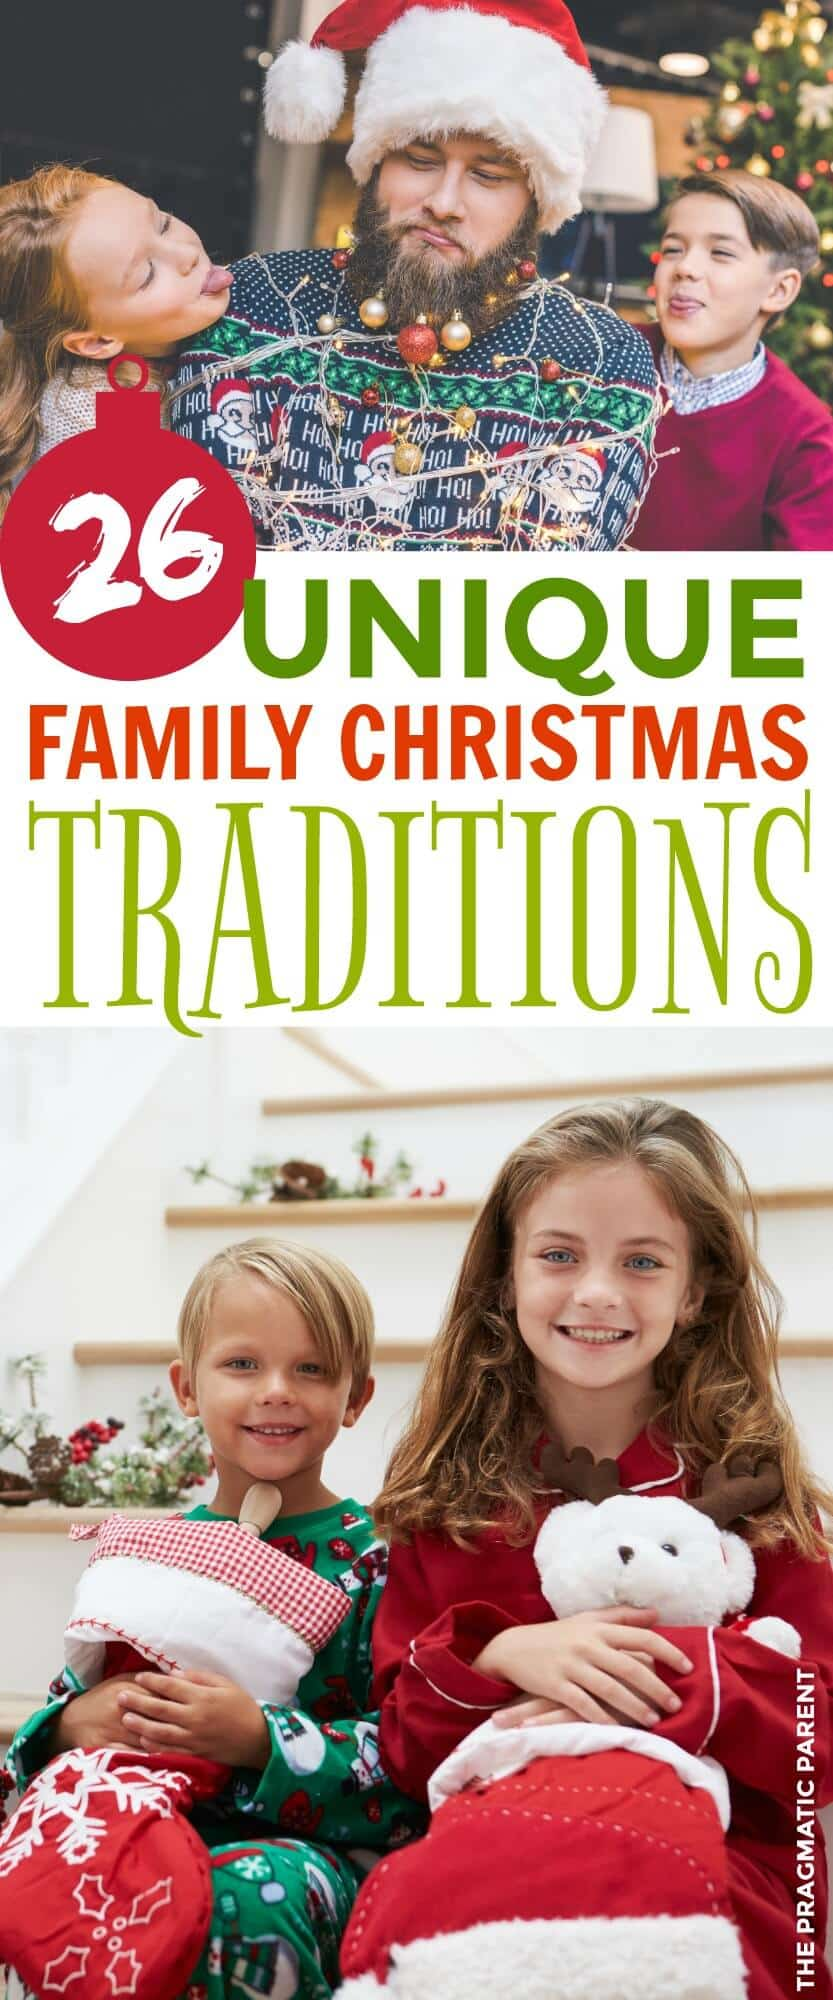 Fun, Silly, Memorable & Unique Family Christmas Traditions You'll Cherish. These Unique Family Traditions Are So Much Fun, Your Kids Will Never Forget Them.